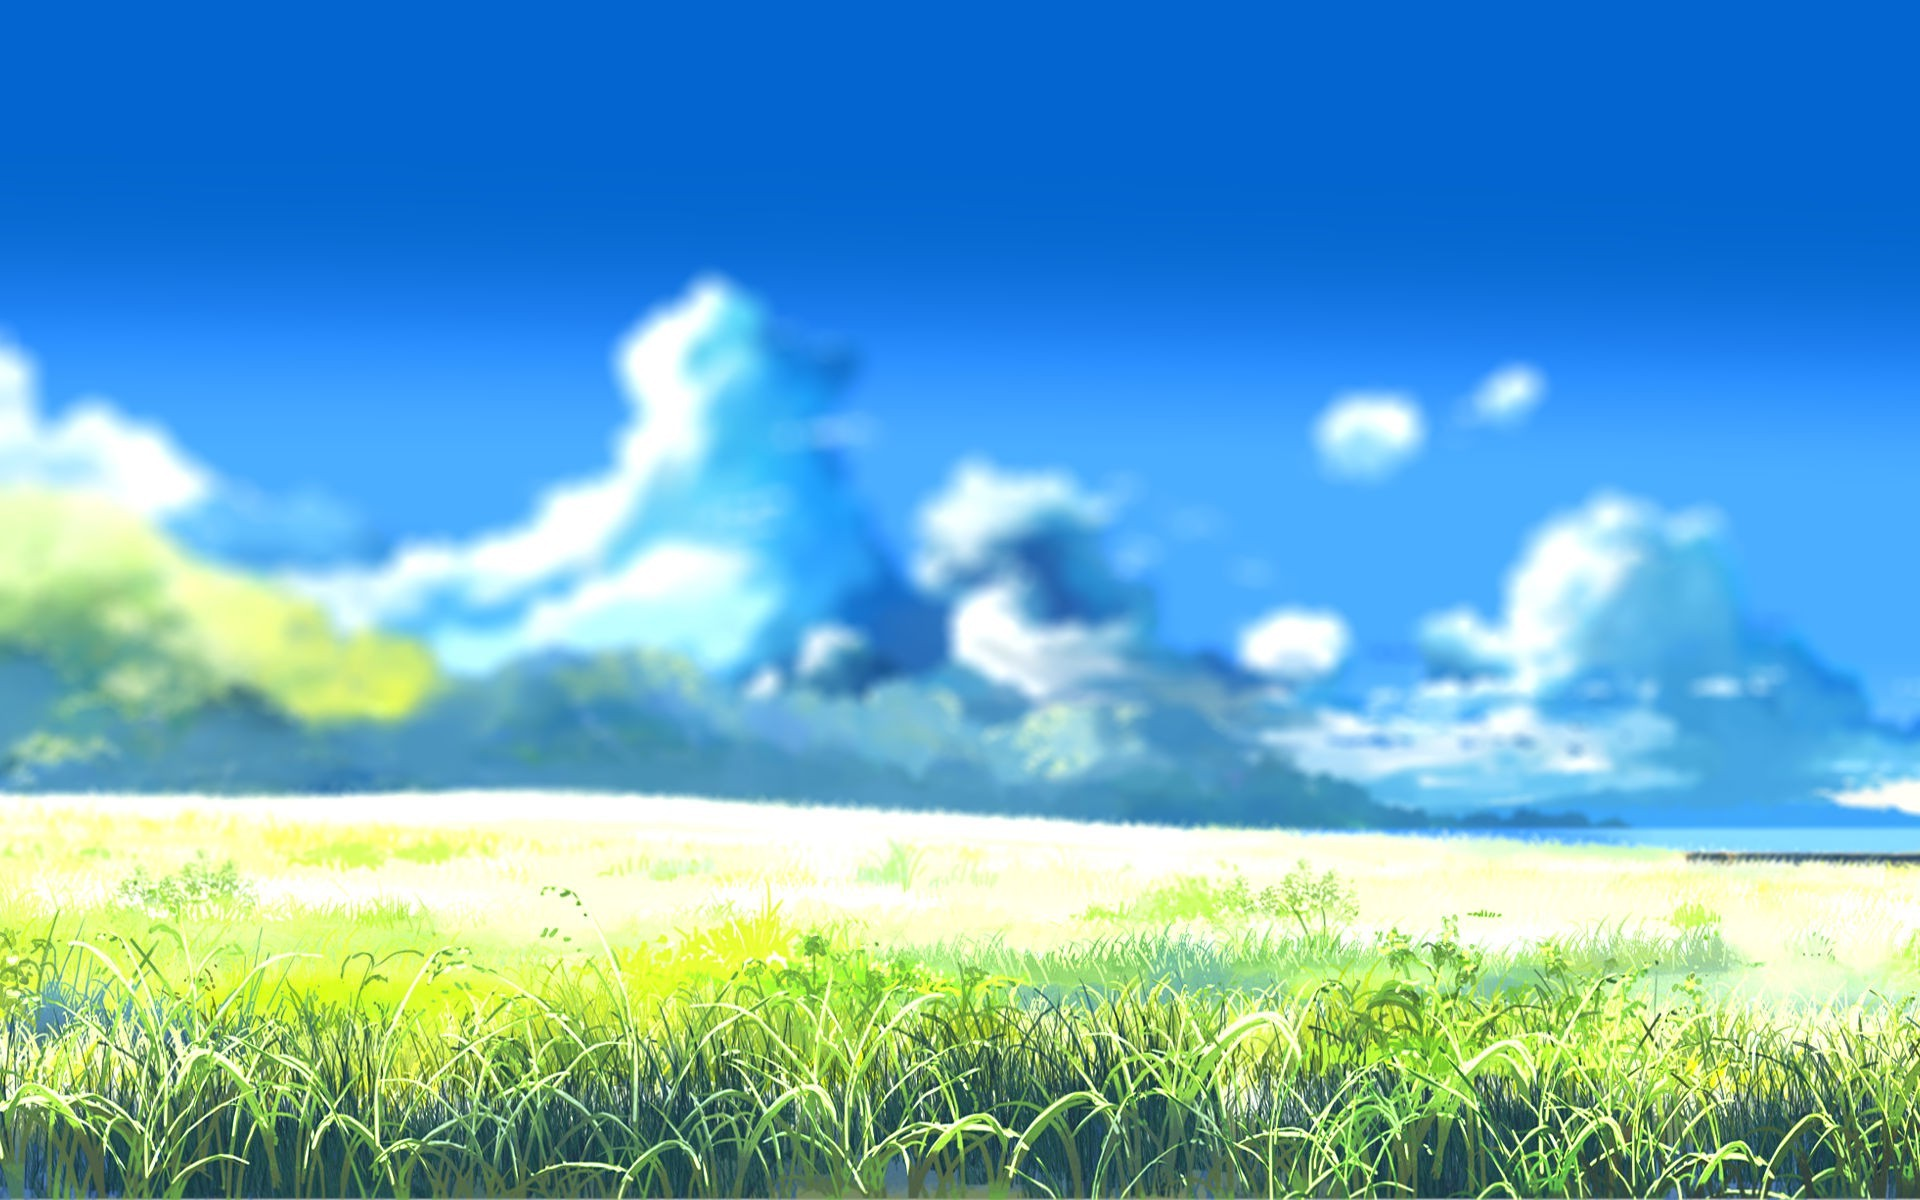 Inuyasha 3d Wallpapers Landscape Nature Drawing Blurred Wallpapers Hd